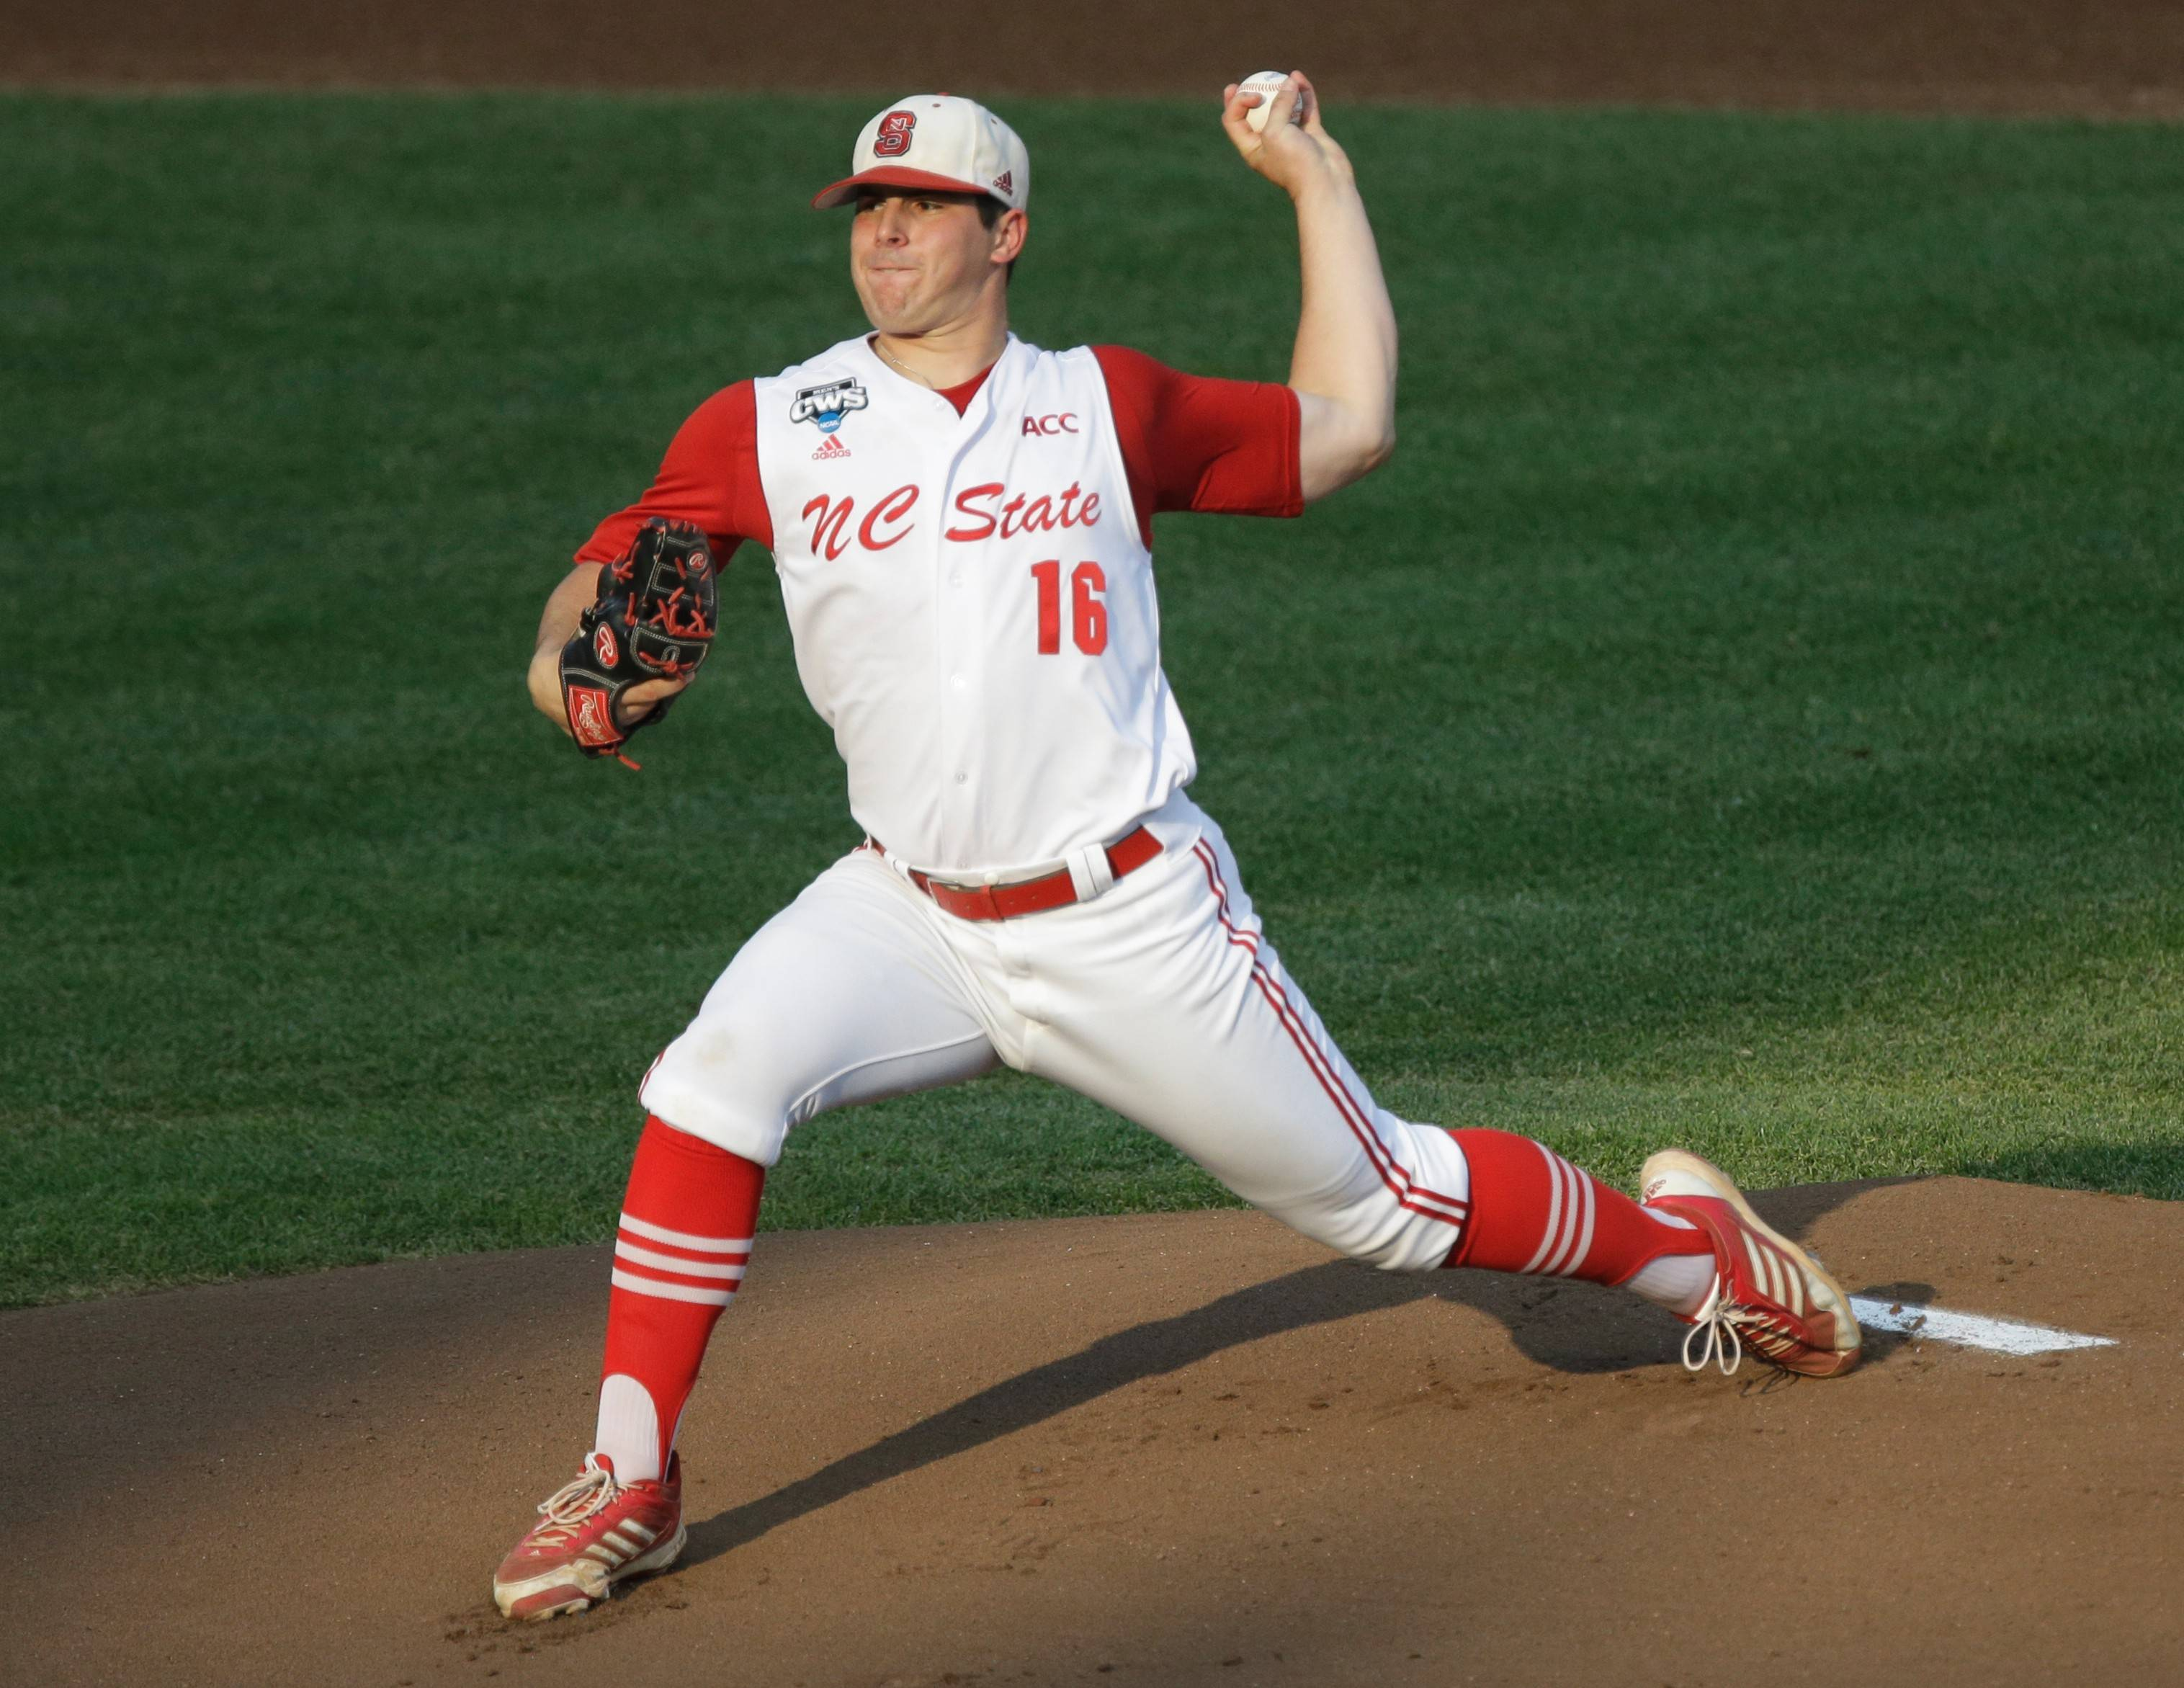 North Carolina State pitcher Carlos Rodon was selected by the White Sox with the third overall pick in the amateur draft Thursday.